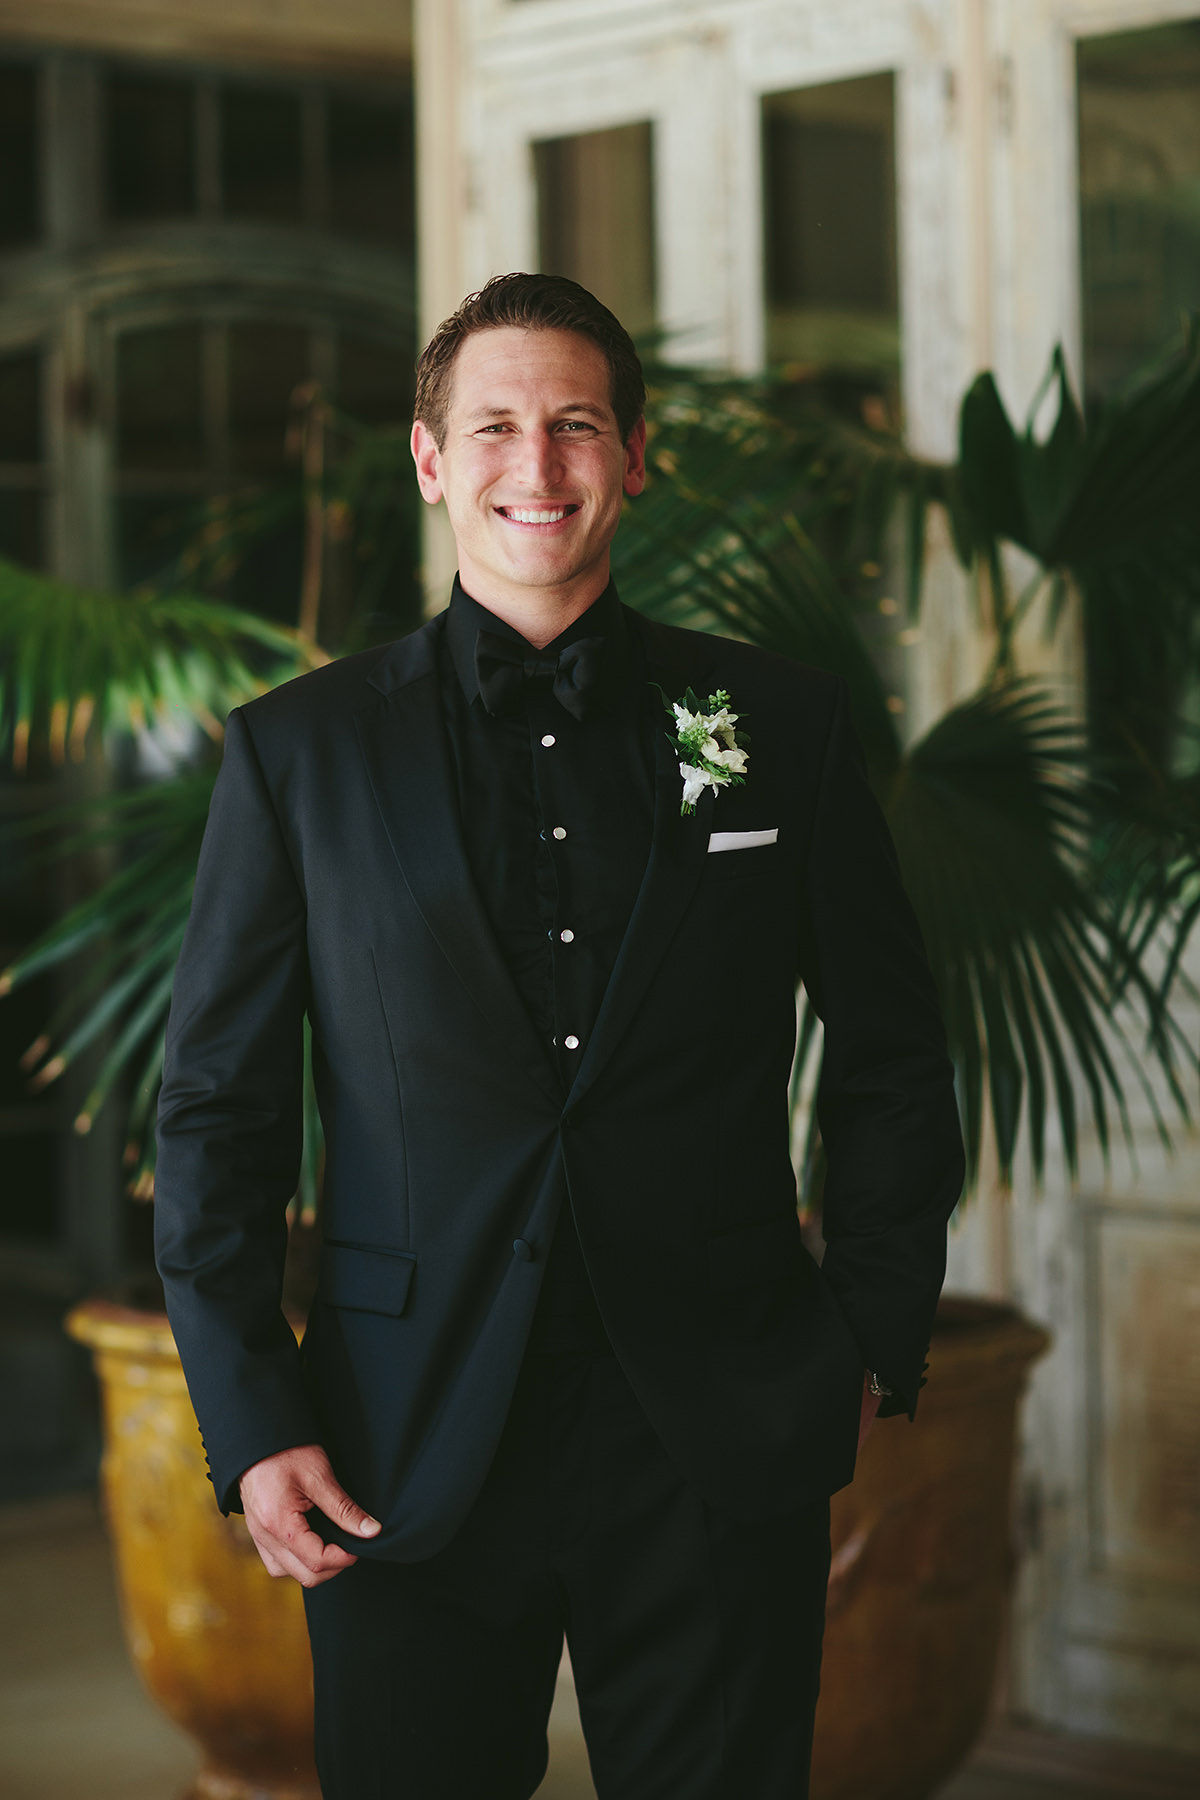 sarah daniel wedding groom in black suit